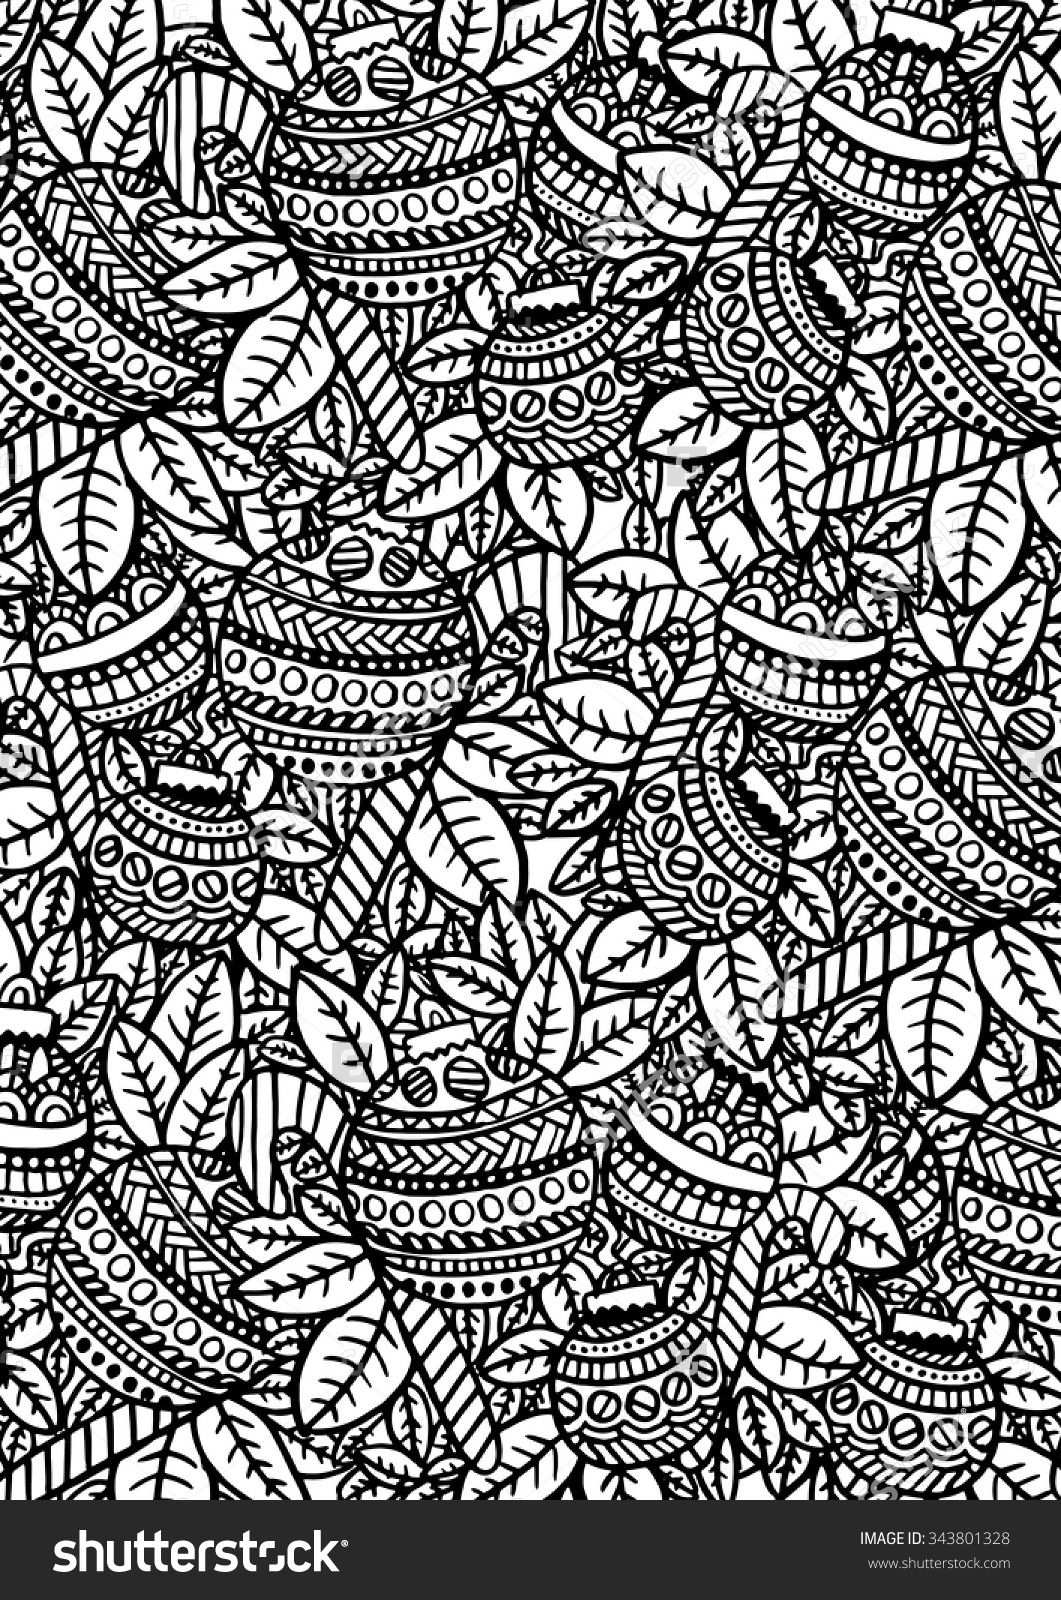 Christmas Baubles coloring page zentangle pattern ...